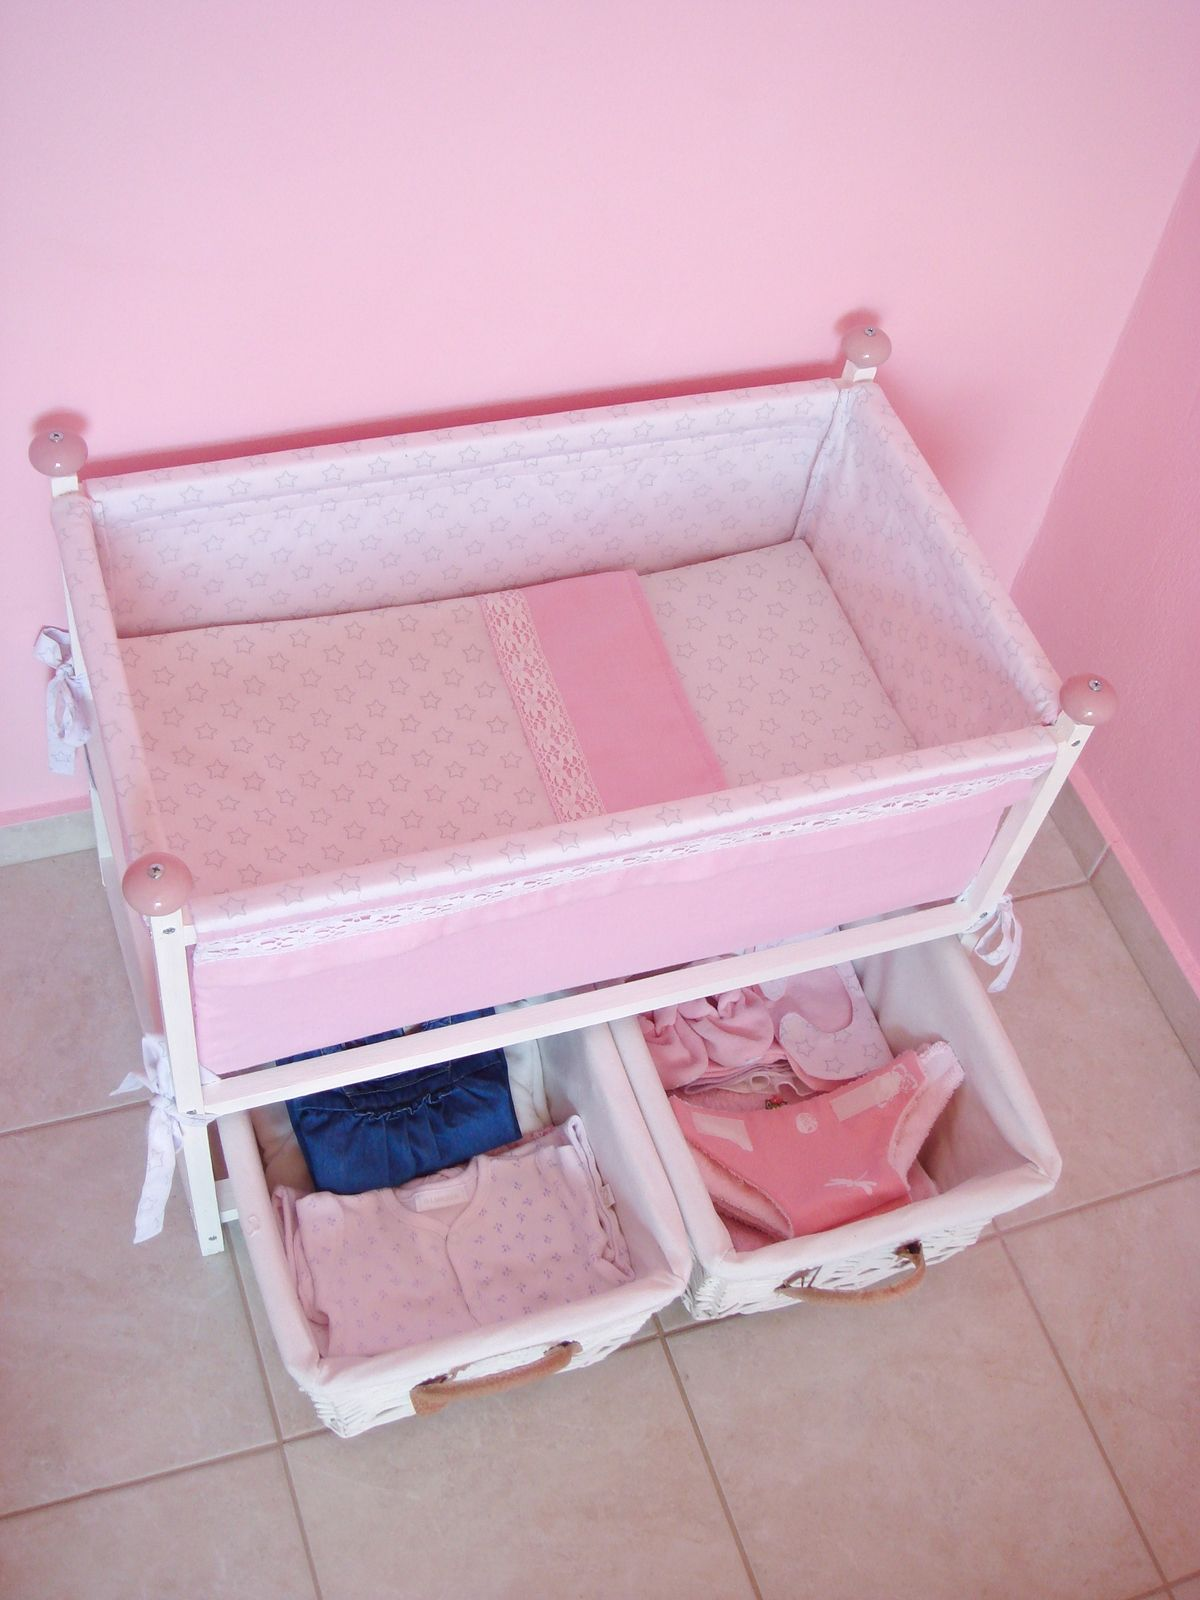 Diy Doll Basinet Crib Bed With Basket Storage Under It